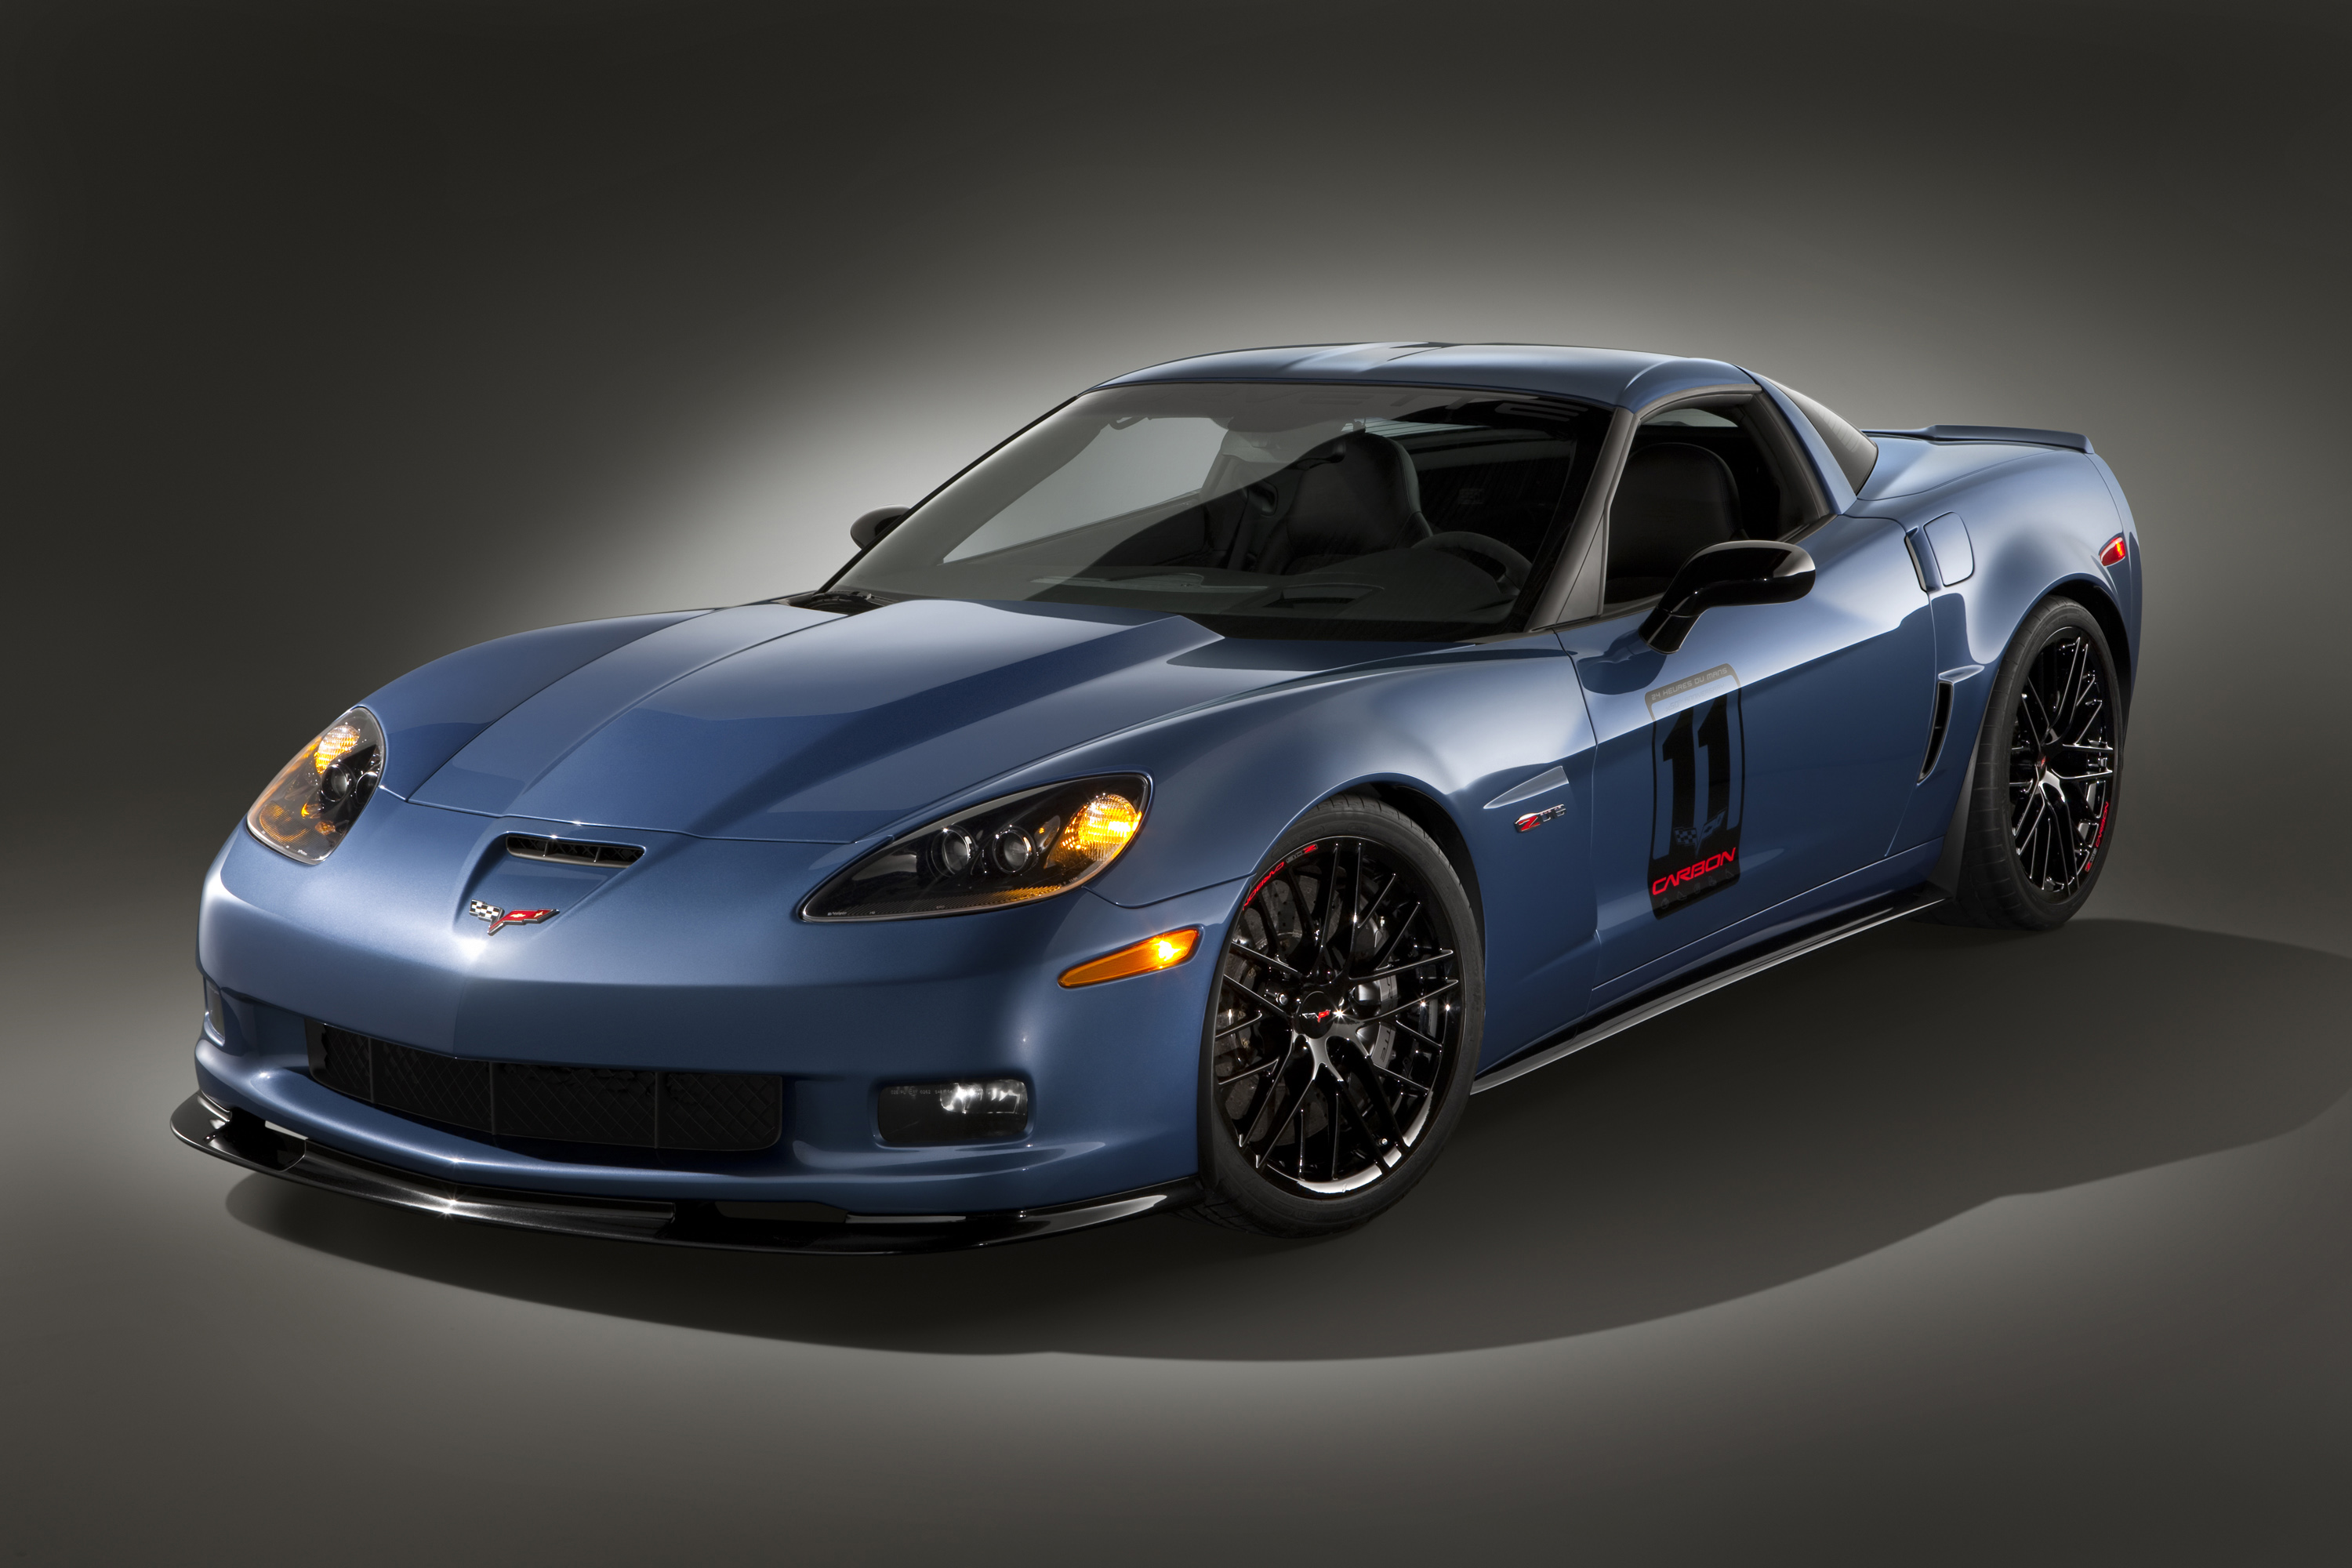 2011 Chevrolet Corvette Z06 Carbon Limited Edition | Top Speed